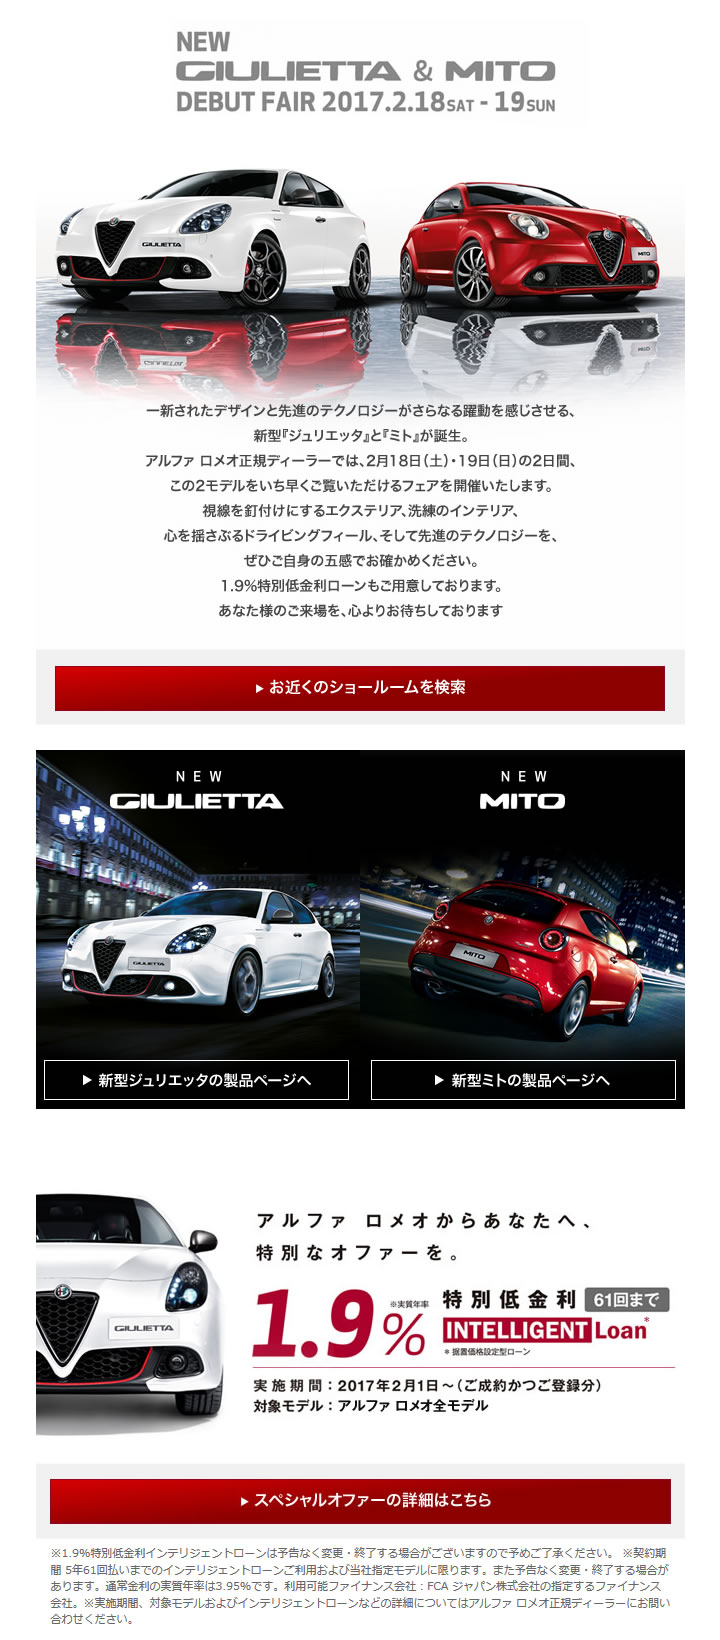 NEW GIULIETTA & MITO DEBUT FAIR 2017.2.18 SAT - 2.19 SUN